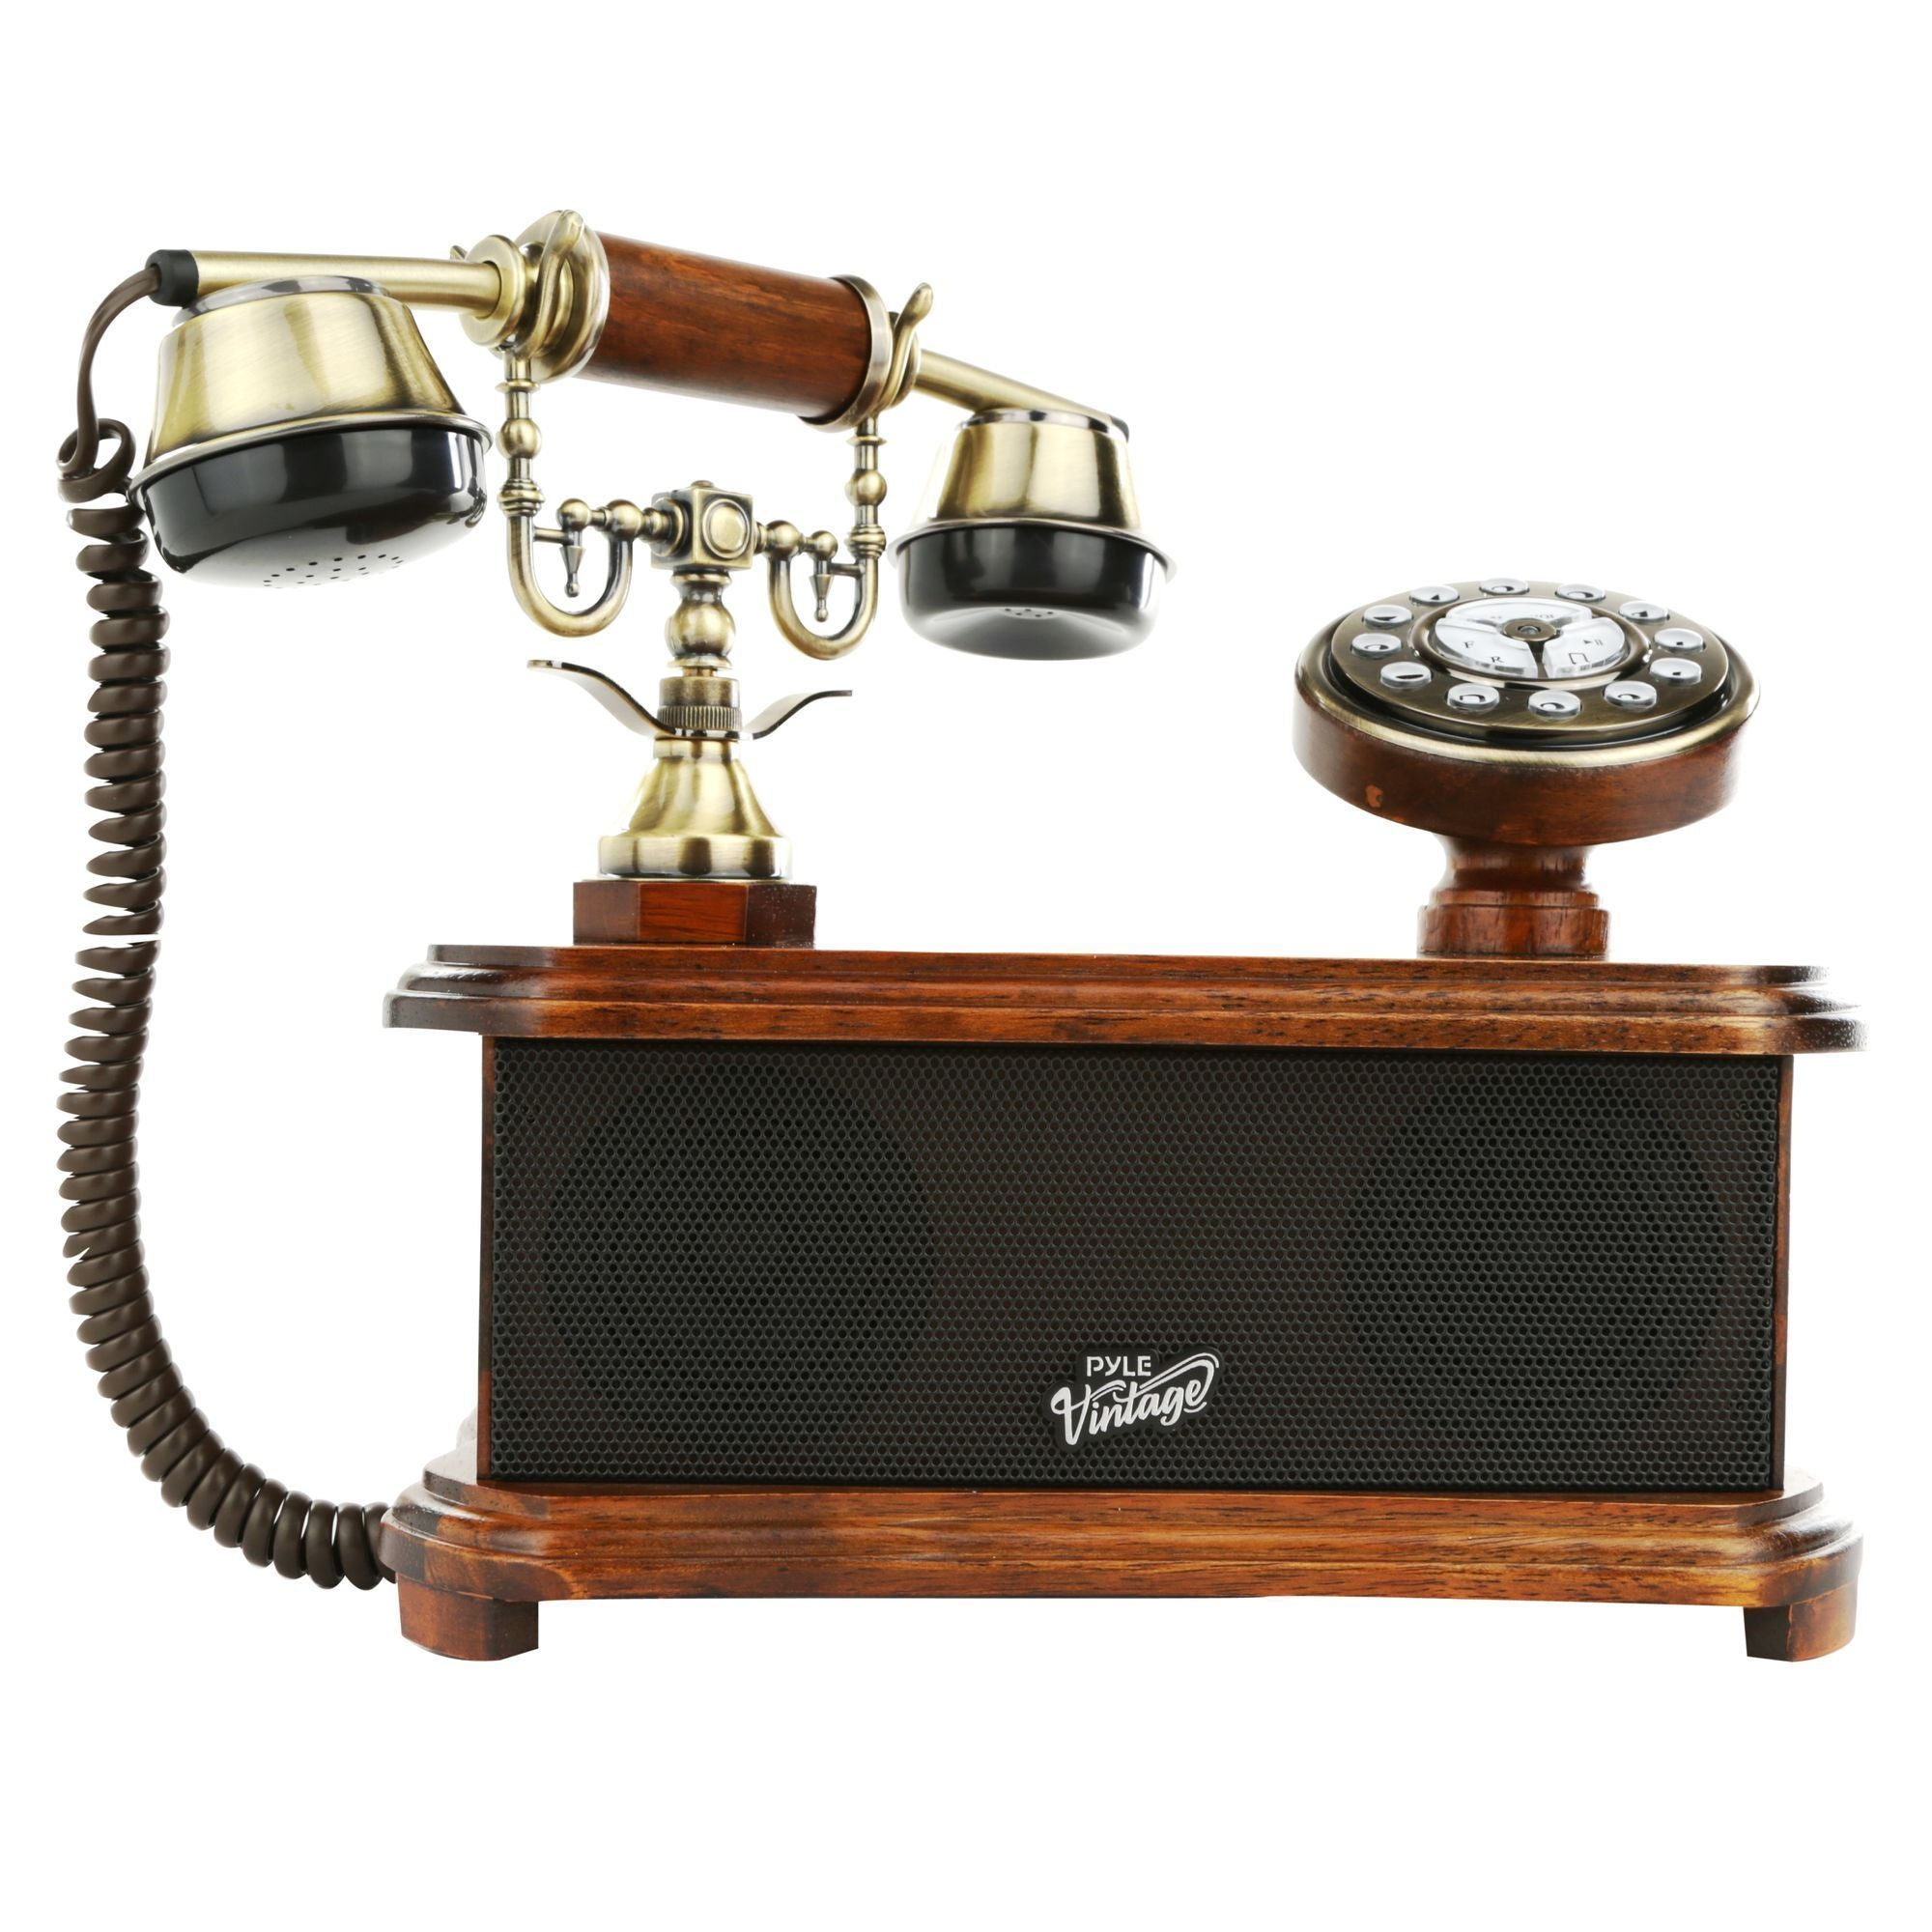 Pyle 2-in-1 Classic Bluetooth Vintage Telephone, Rotary Phone Dial, Birch Wood Brushed Copper, (PVNTL53BT)